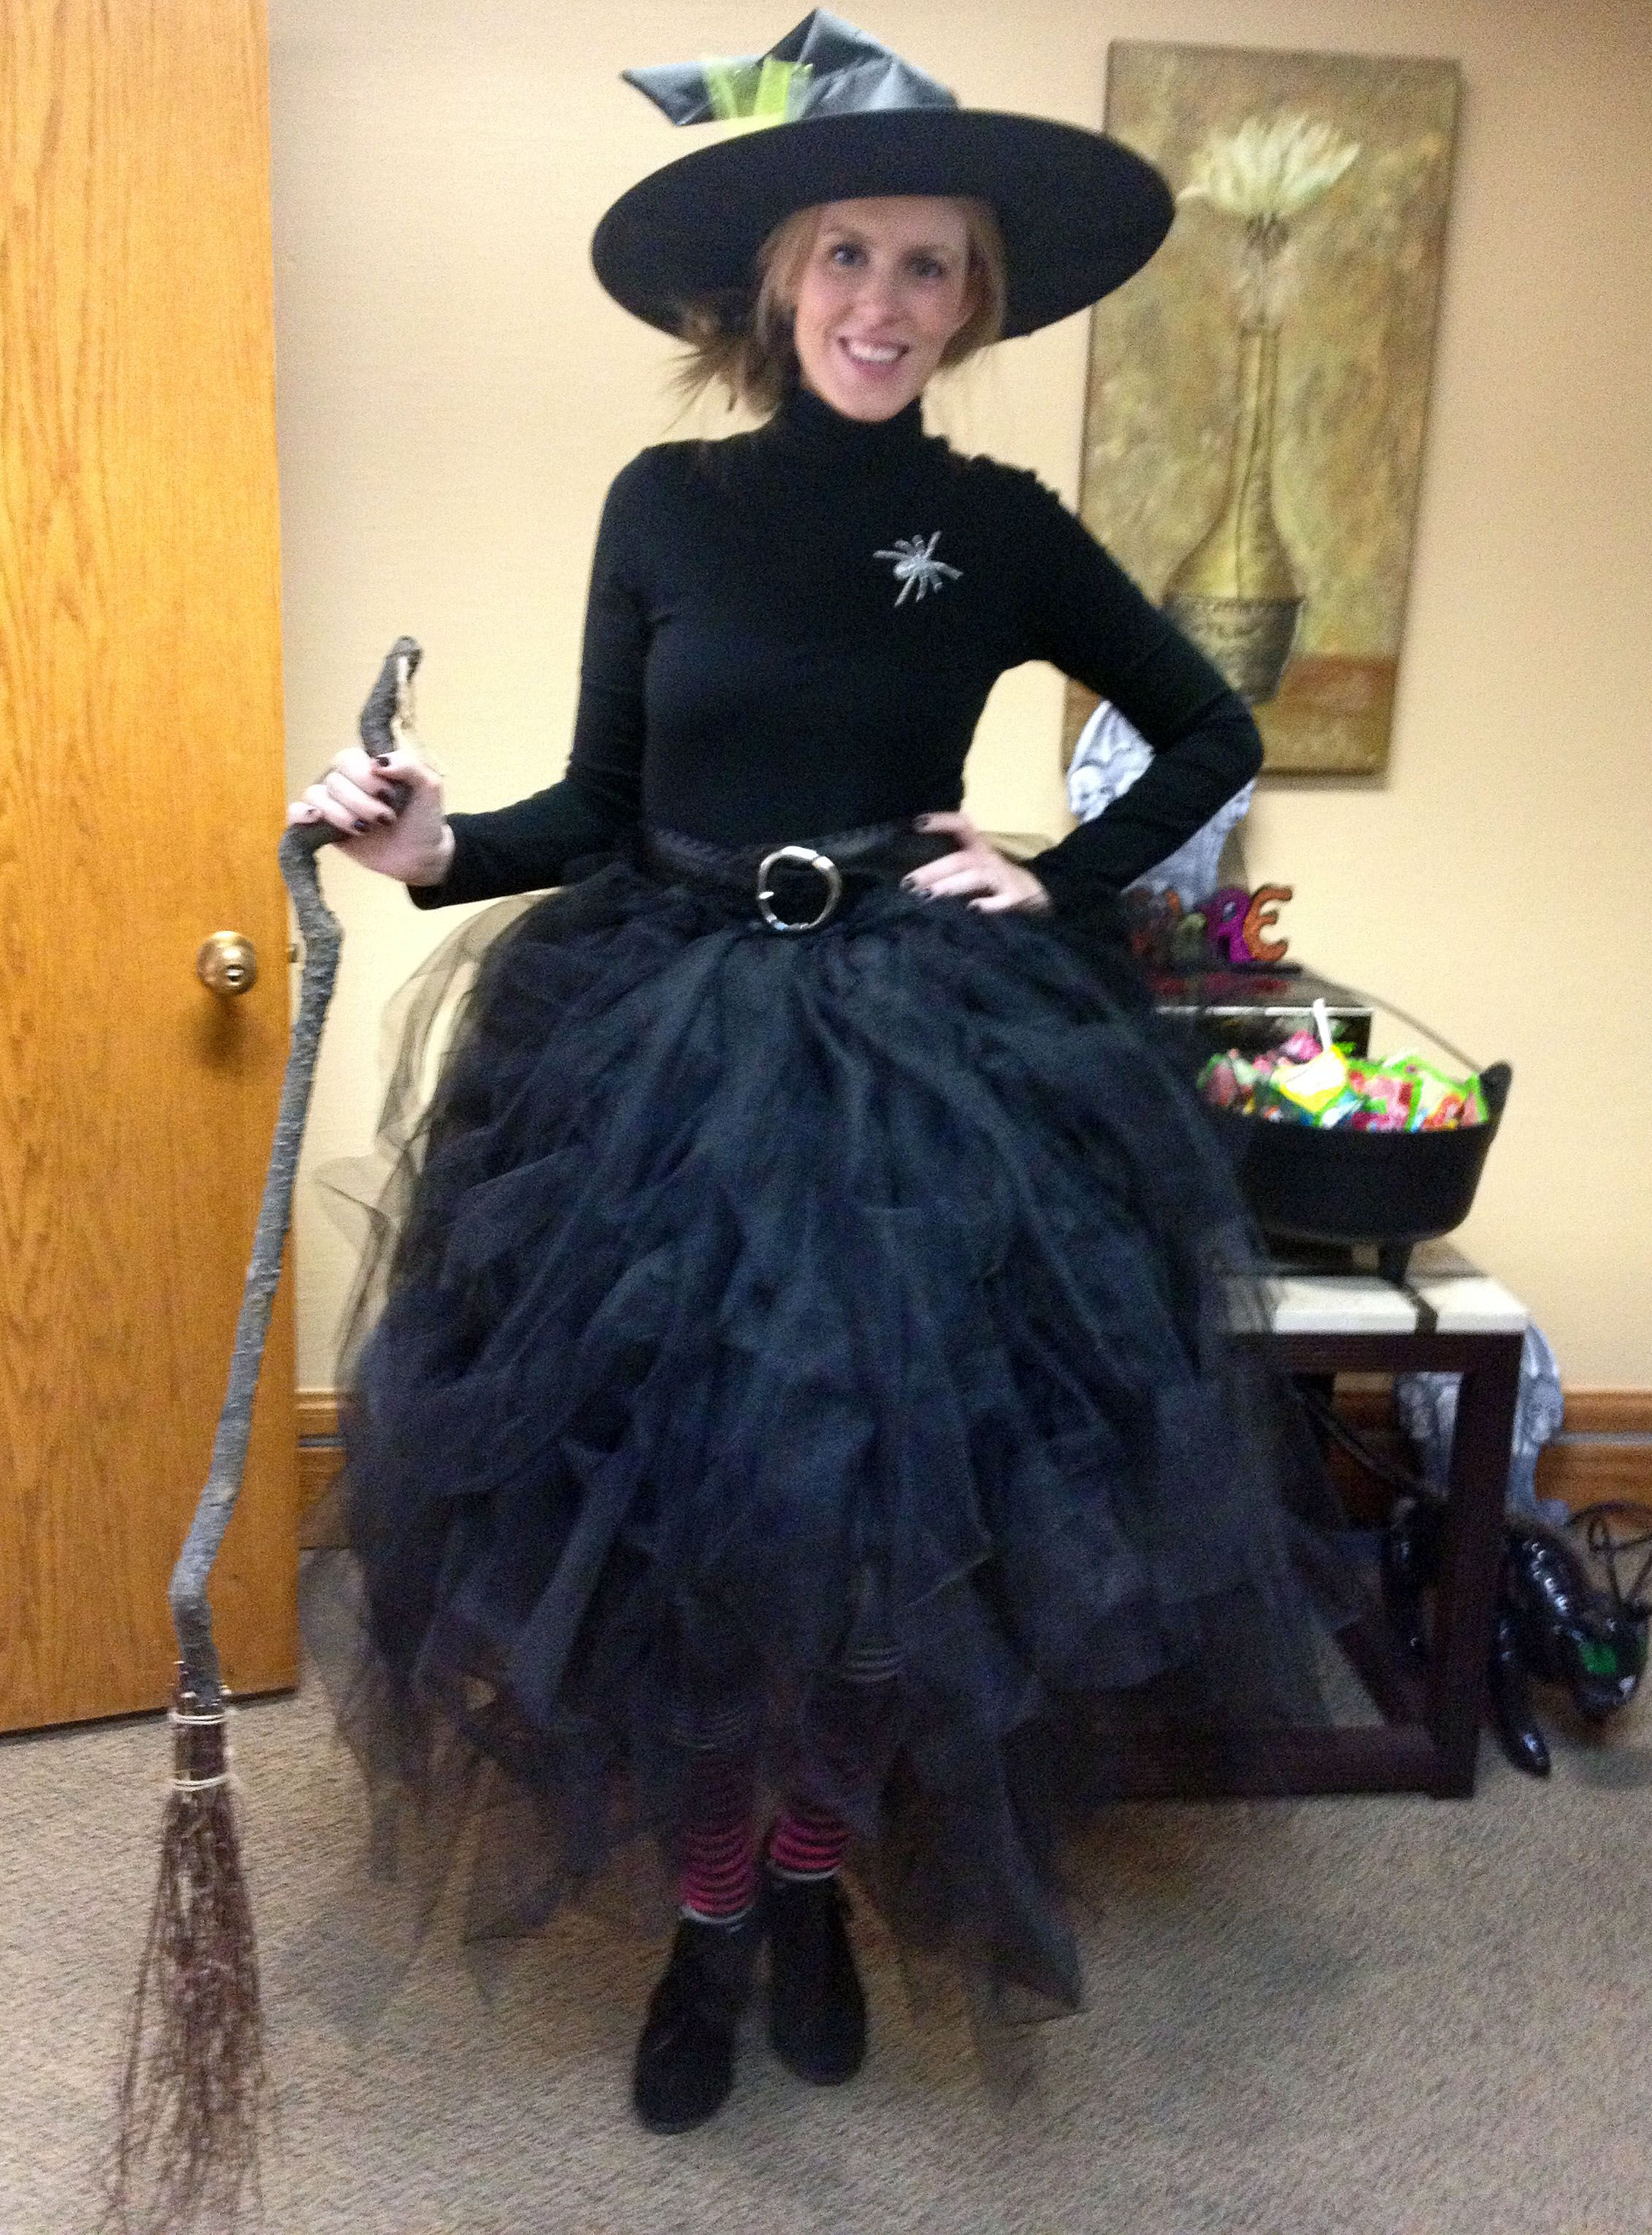 Black Tulle Witch's Skirt for Halloween! Roughly 25 yards of black ...